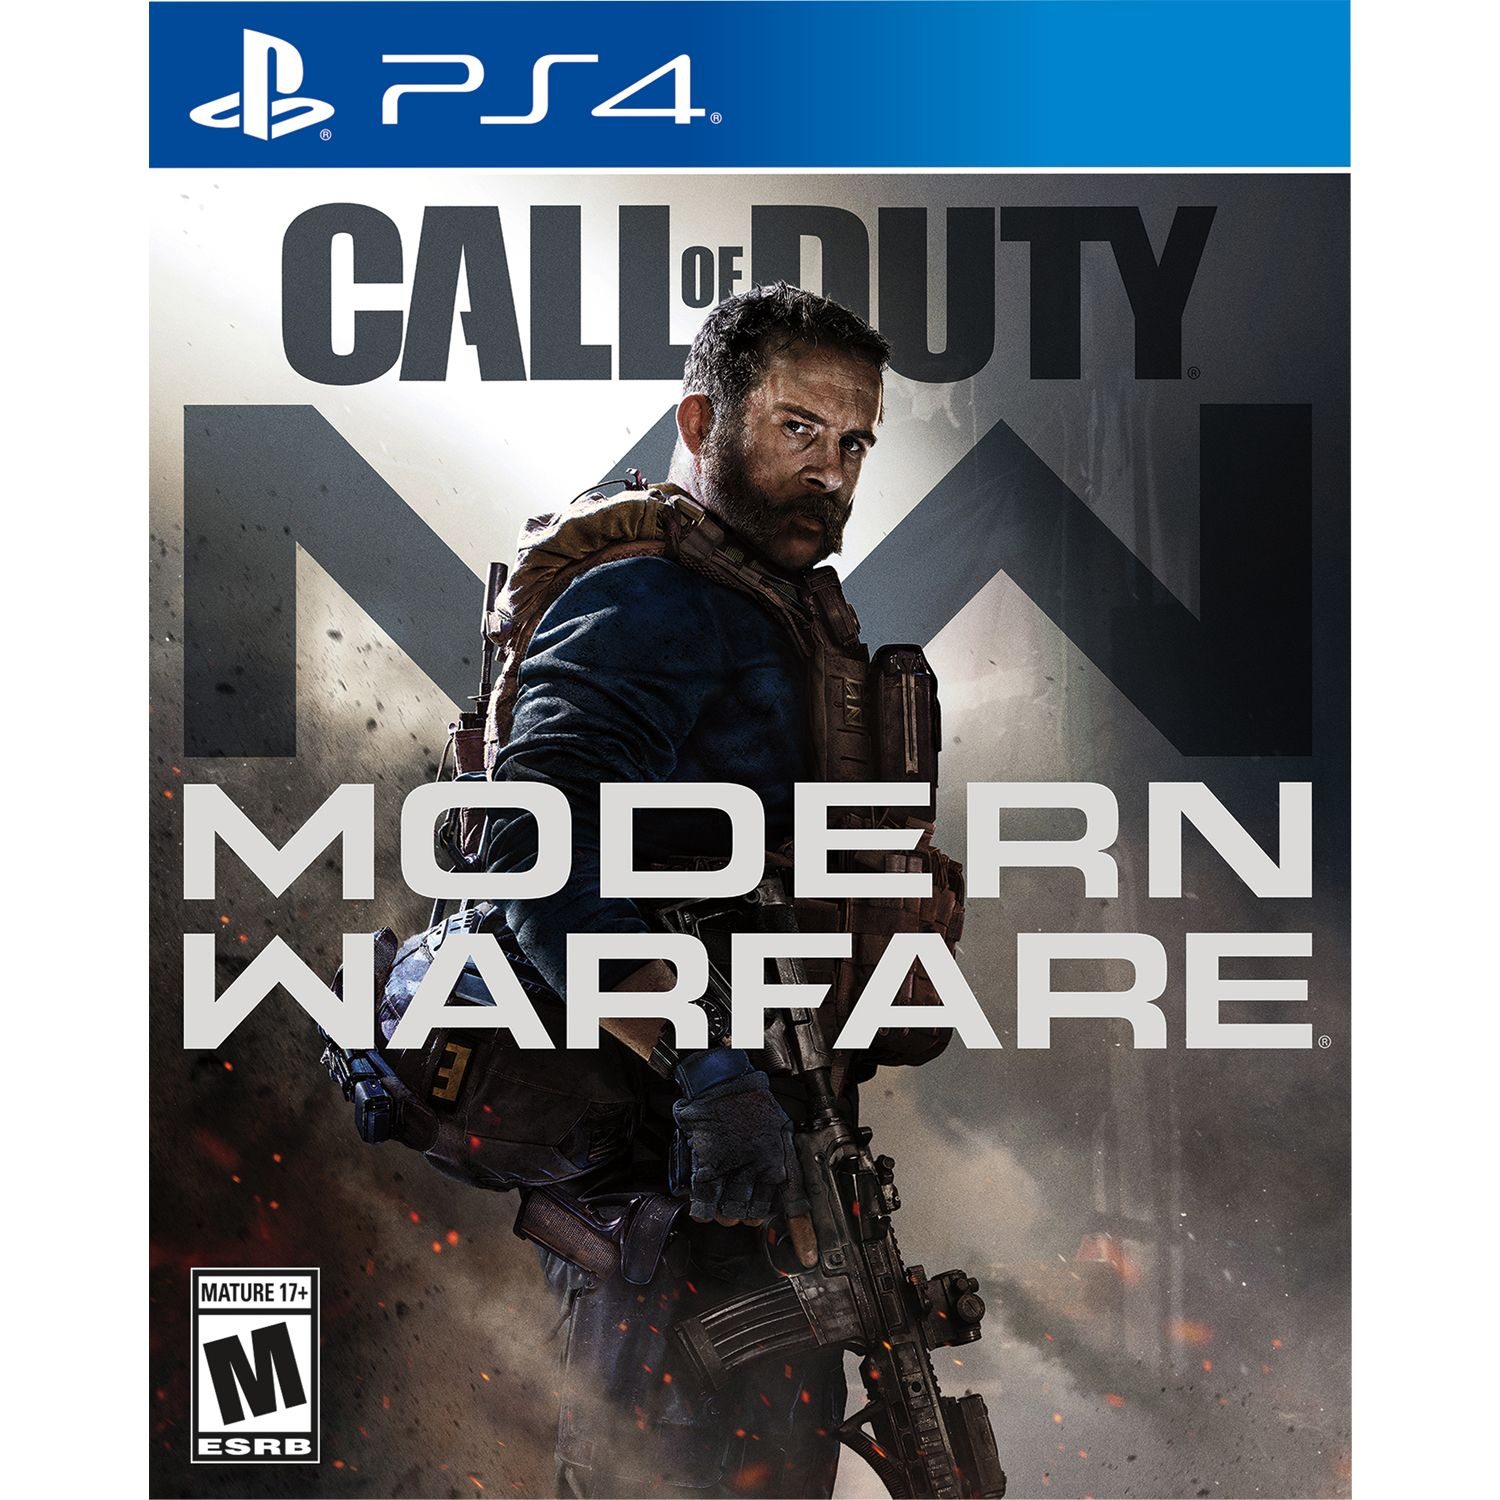 Call Of Duty Modern Warfare Playstation 4 Get 3 Hours Of 2xp With Game Purchase Only At Walmart Ad Warfare Affili In 2020 With Images Modern Warfare Call Of Duty Activision